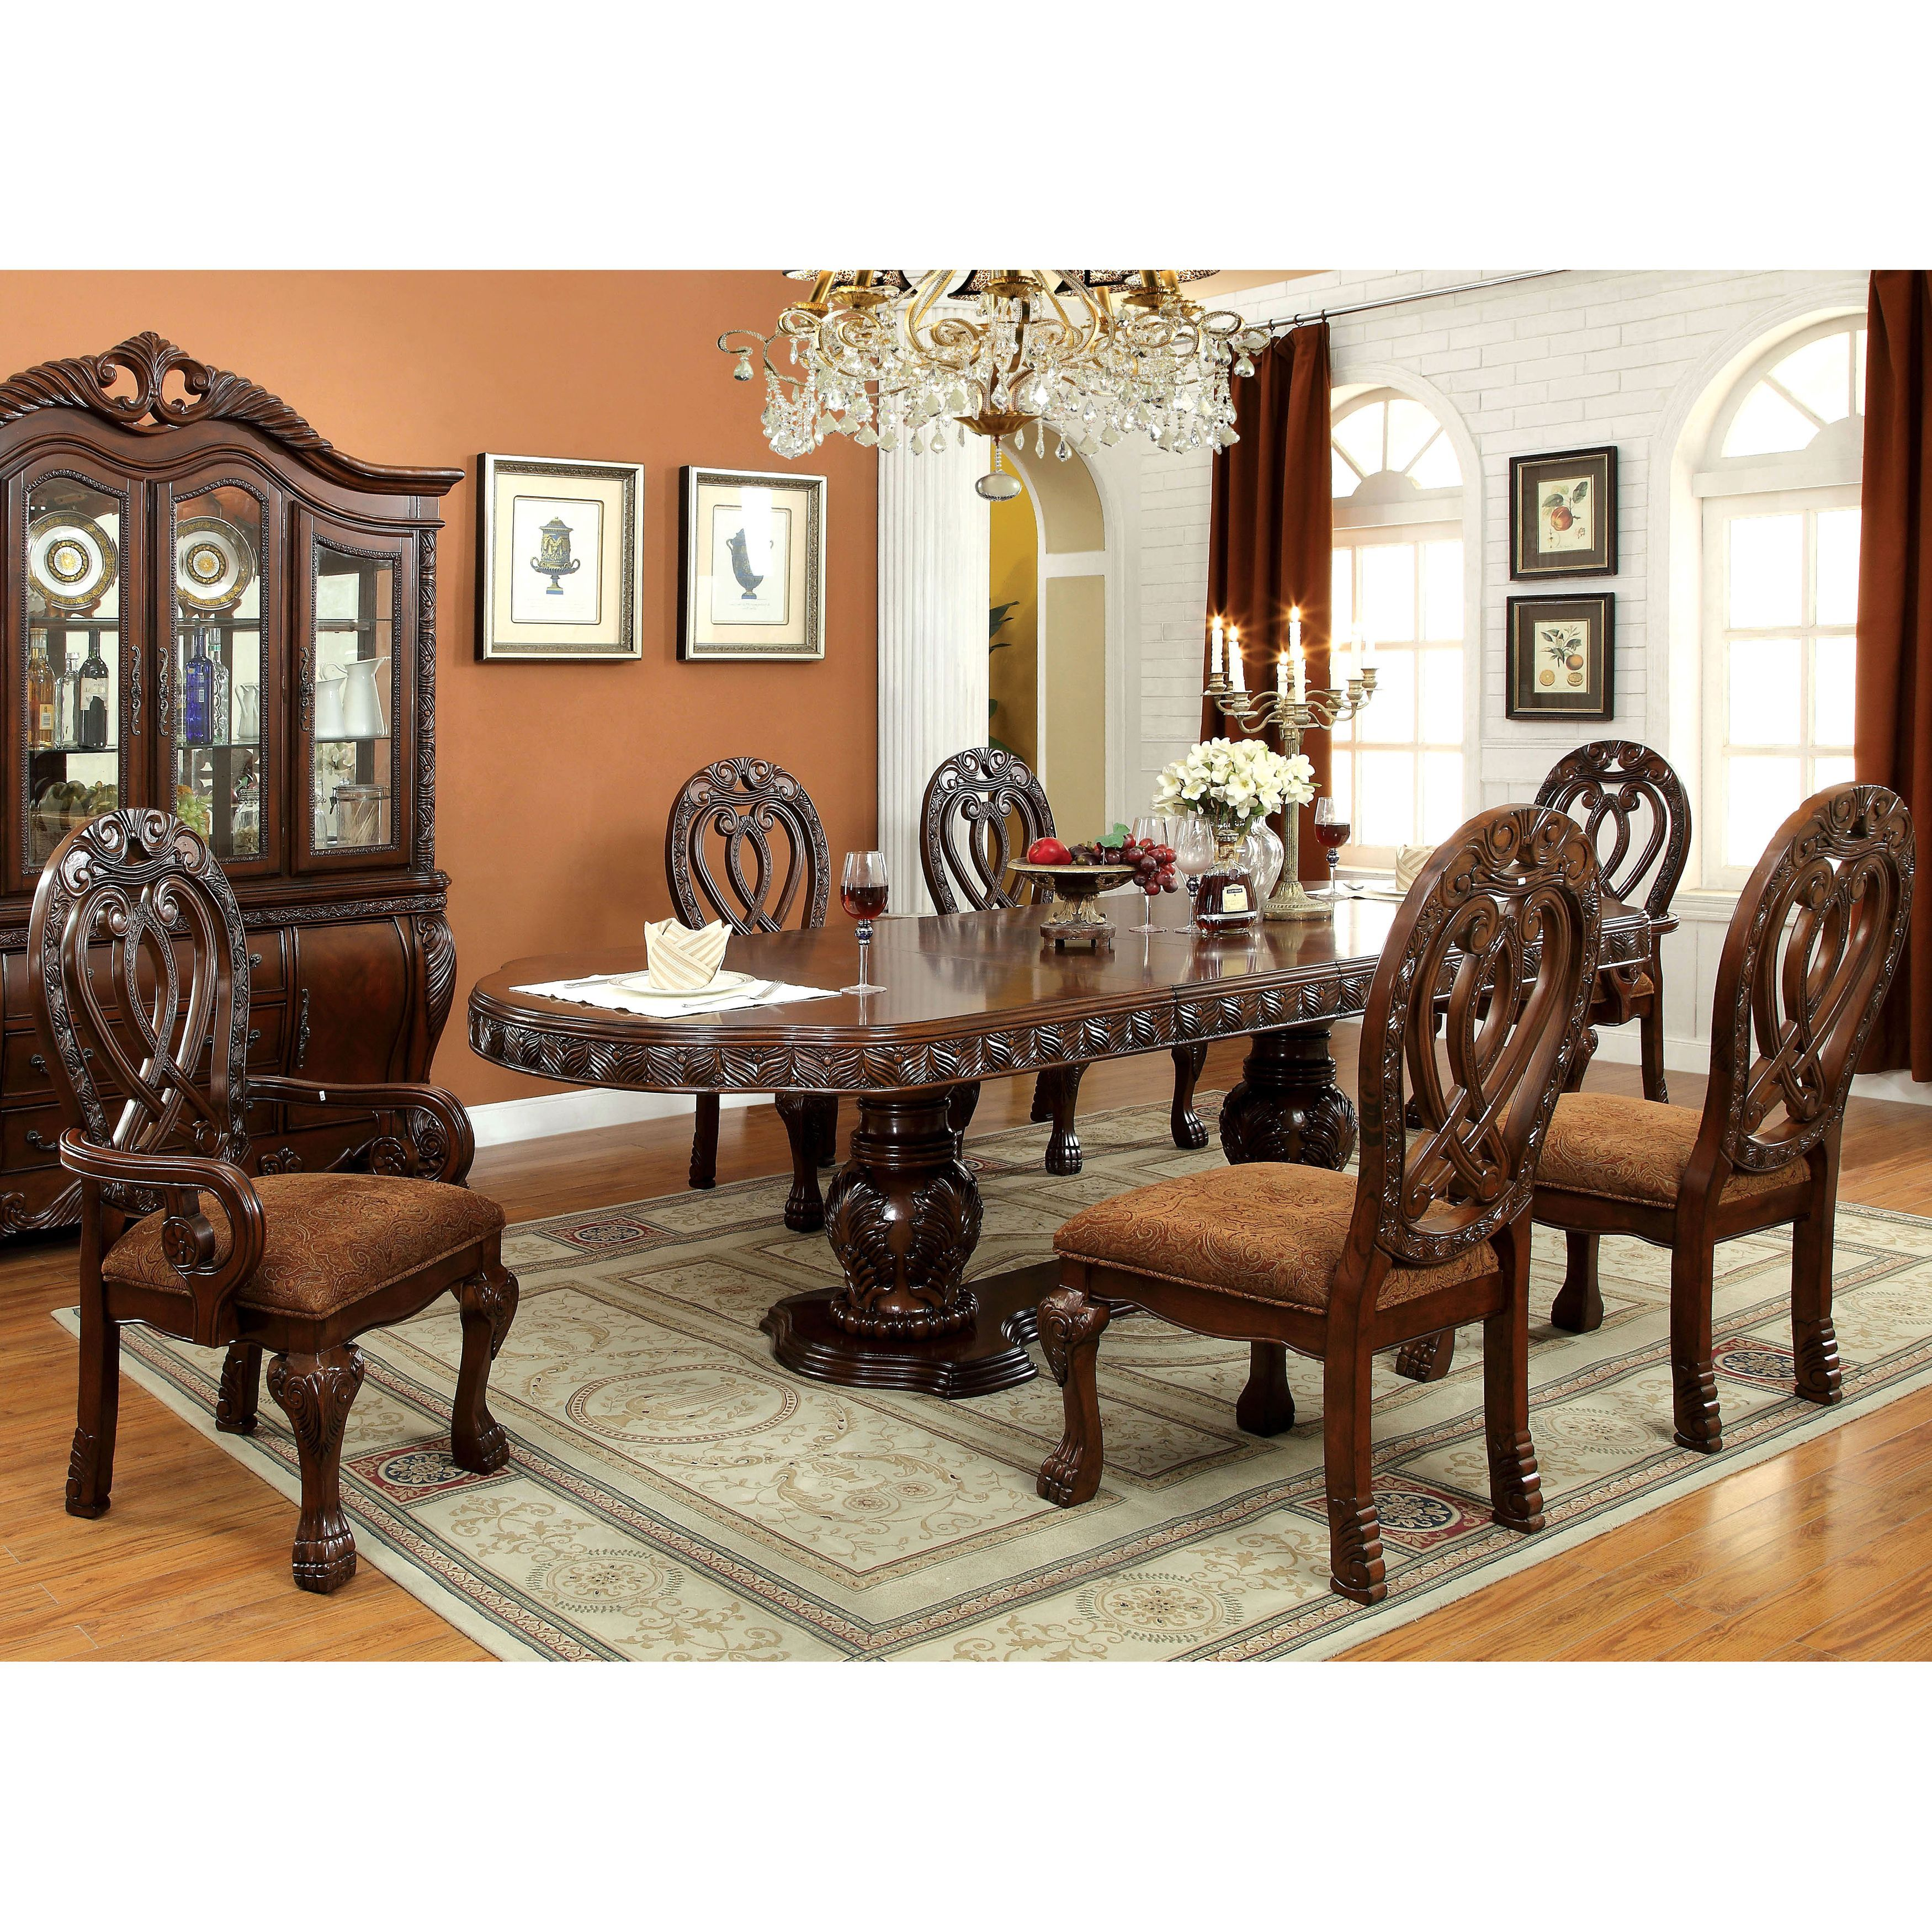 Furniture Of America Dubelle 7 Piece Formal Dining Set: Furniture Of America Beaufort Formal 7-Piece Dining Set In